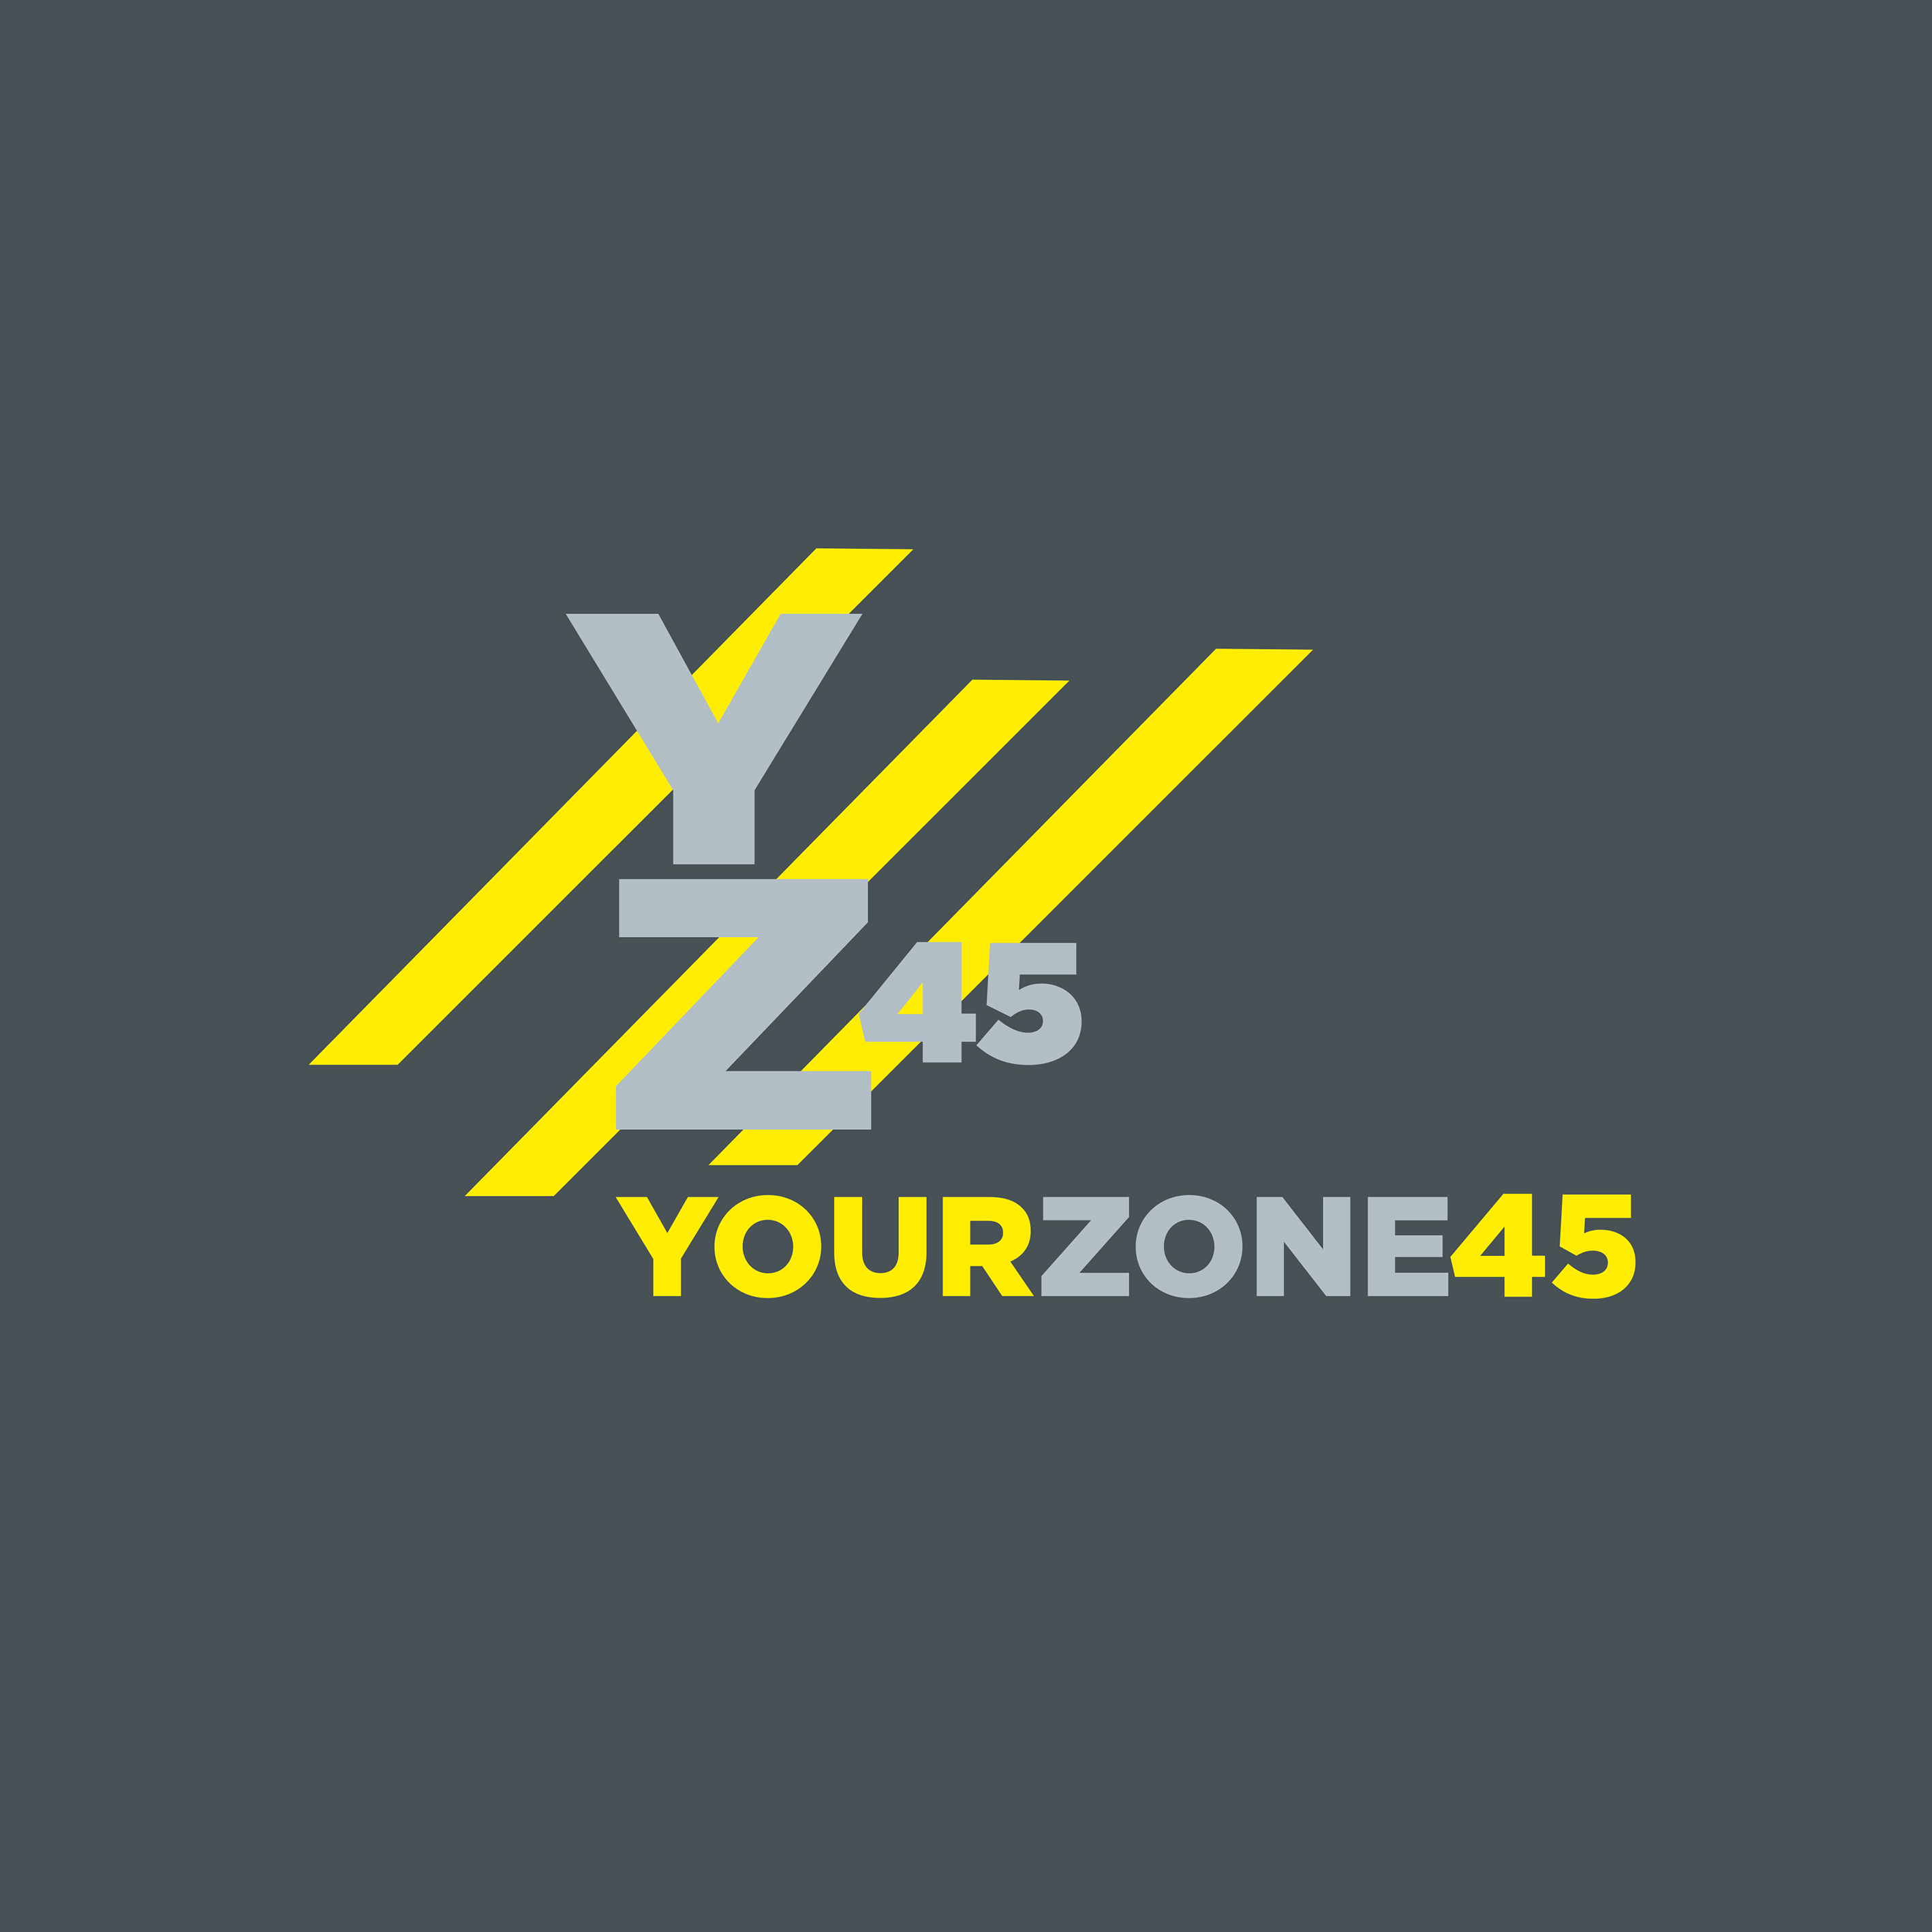 Your Zone 45 Franchise